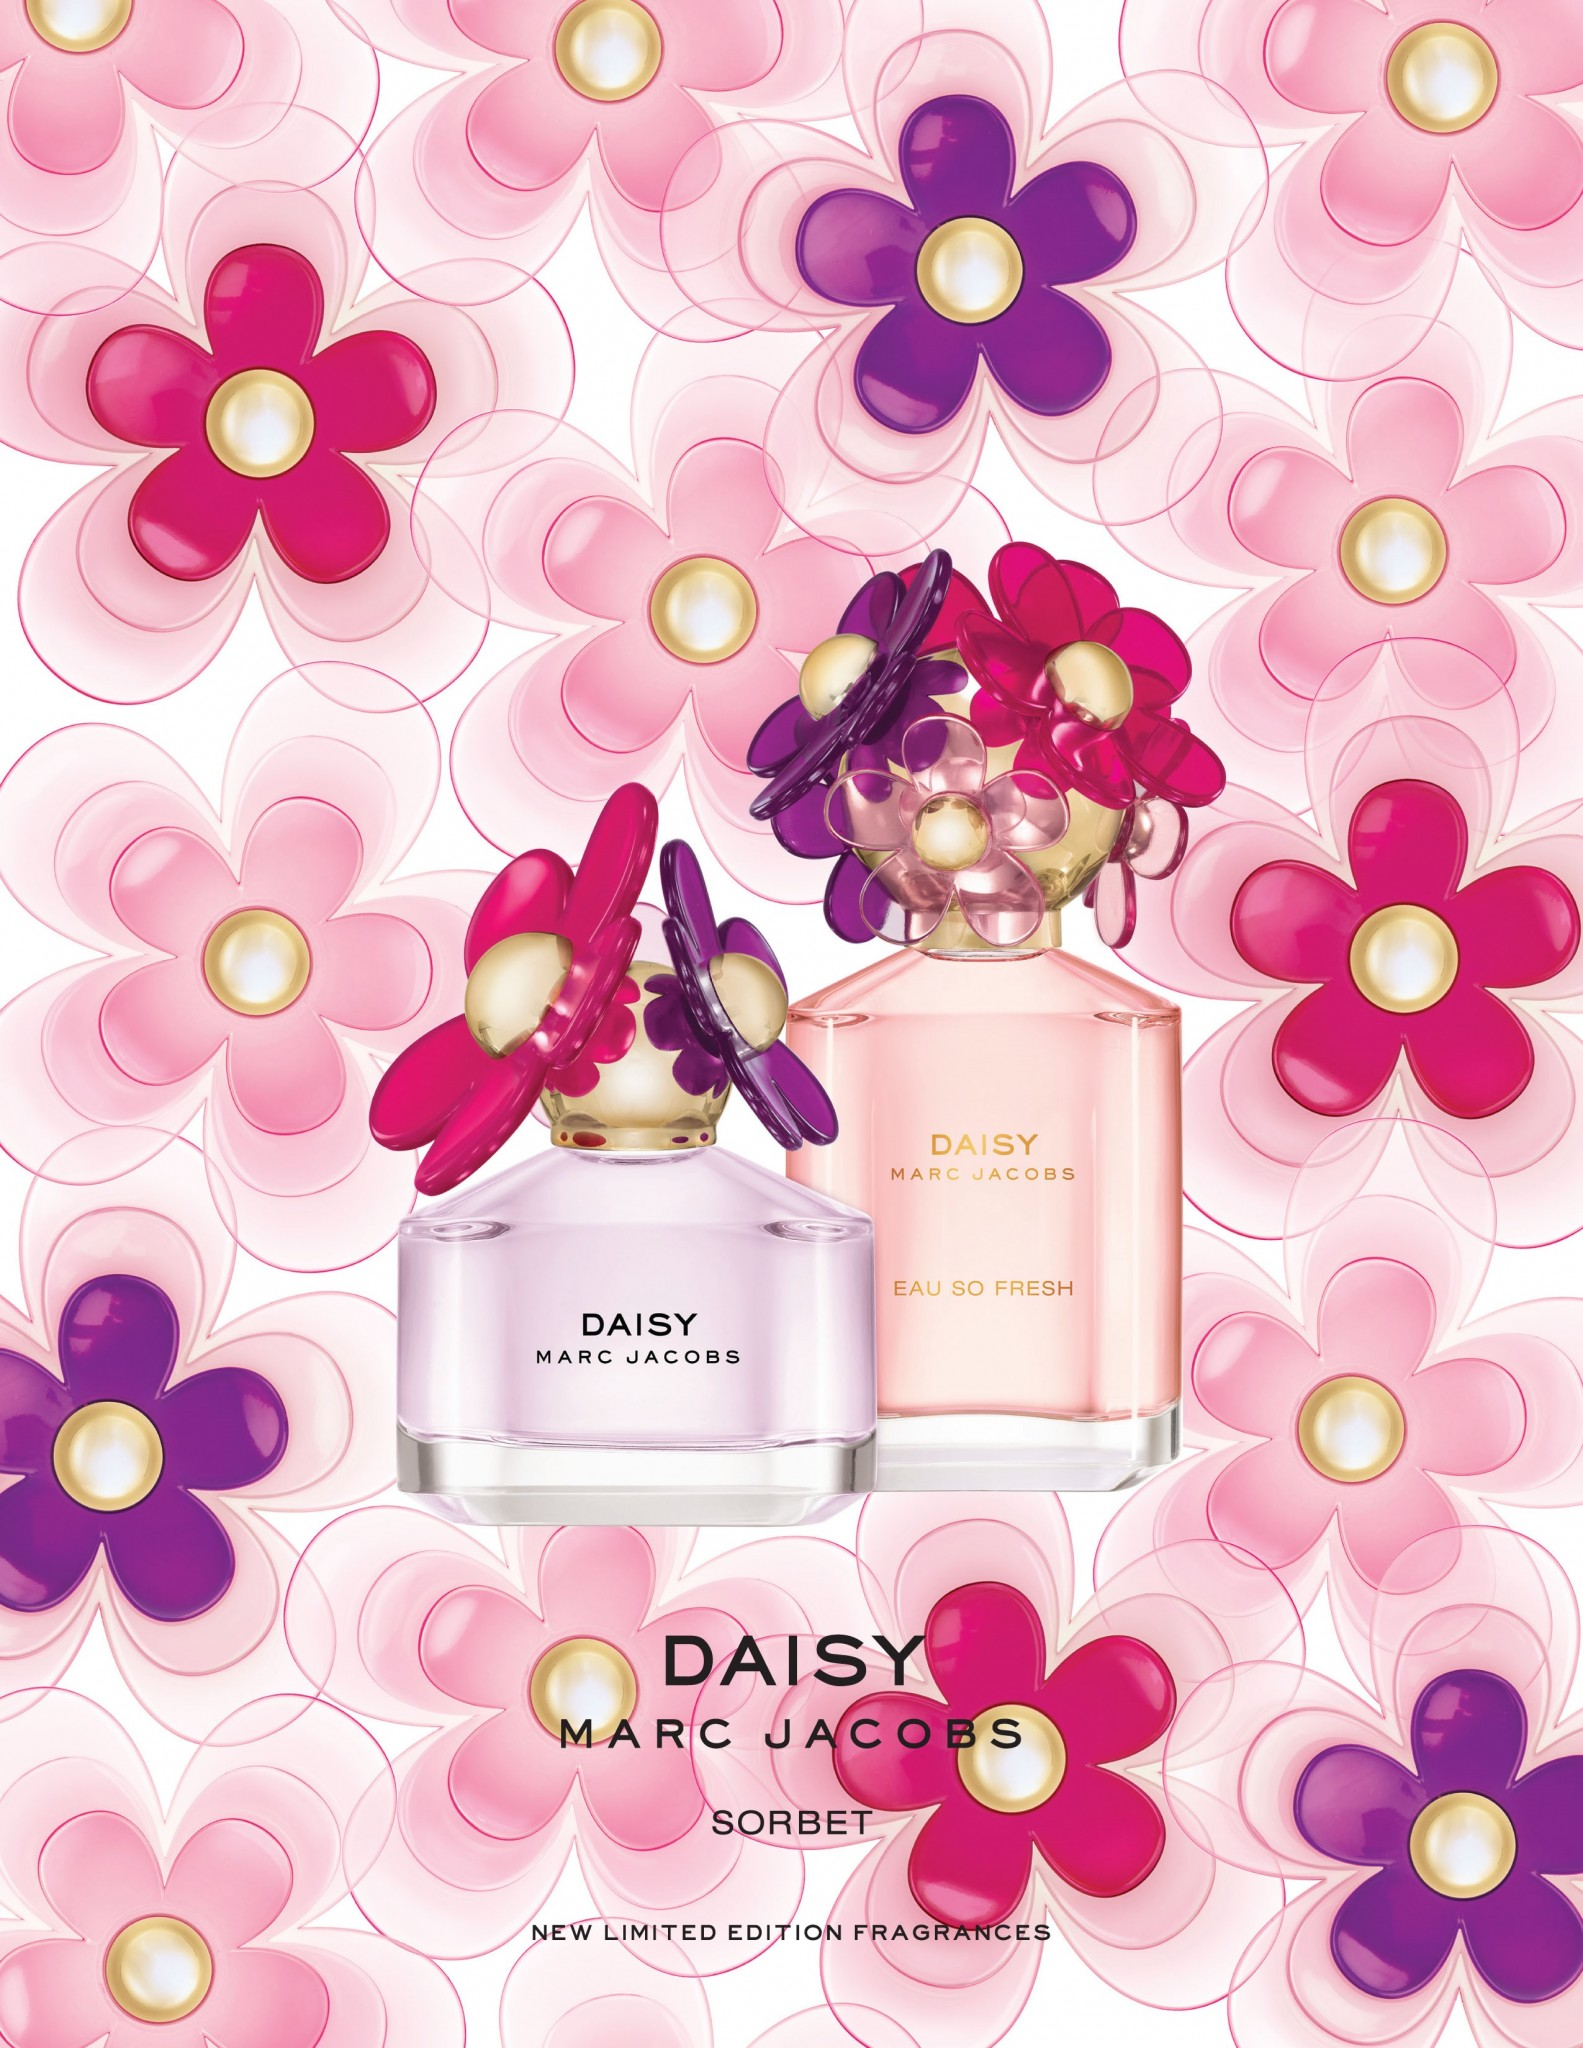 Daisy and Daisy ESF Sorbet Edition - Marc Jacobs Daisy Sorbet Eau de Toilette Review